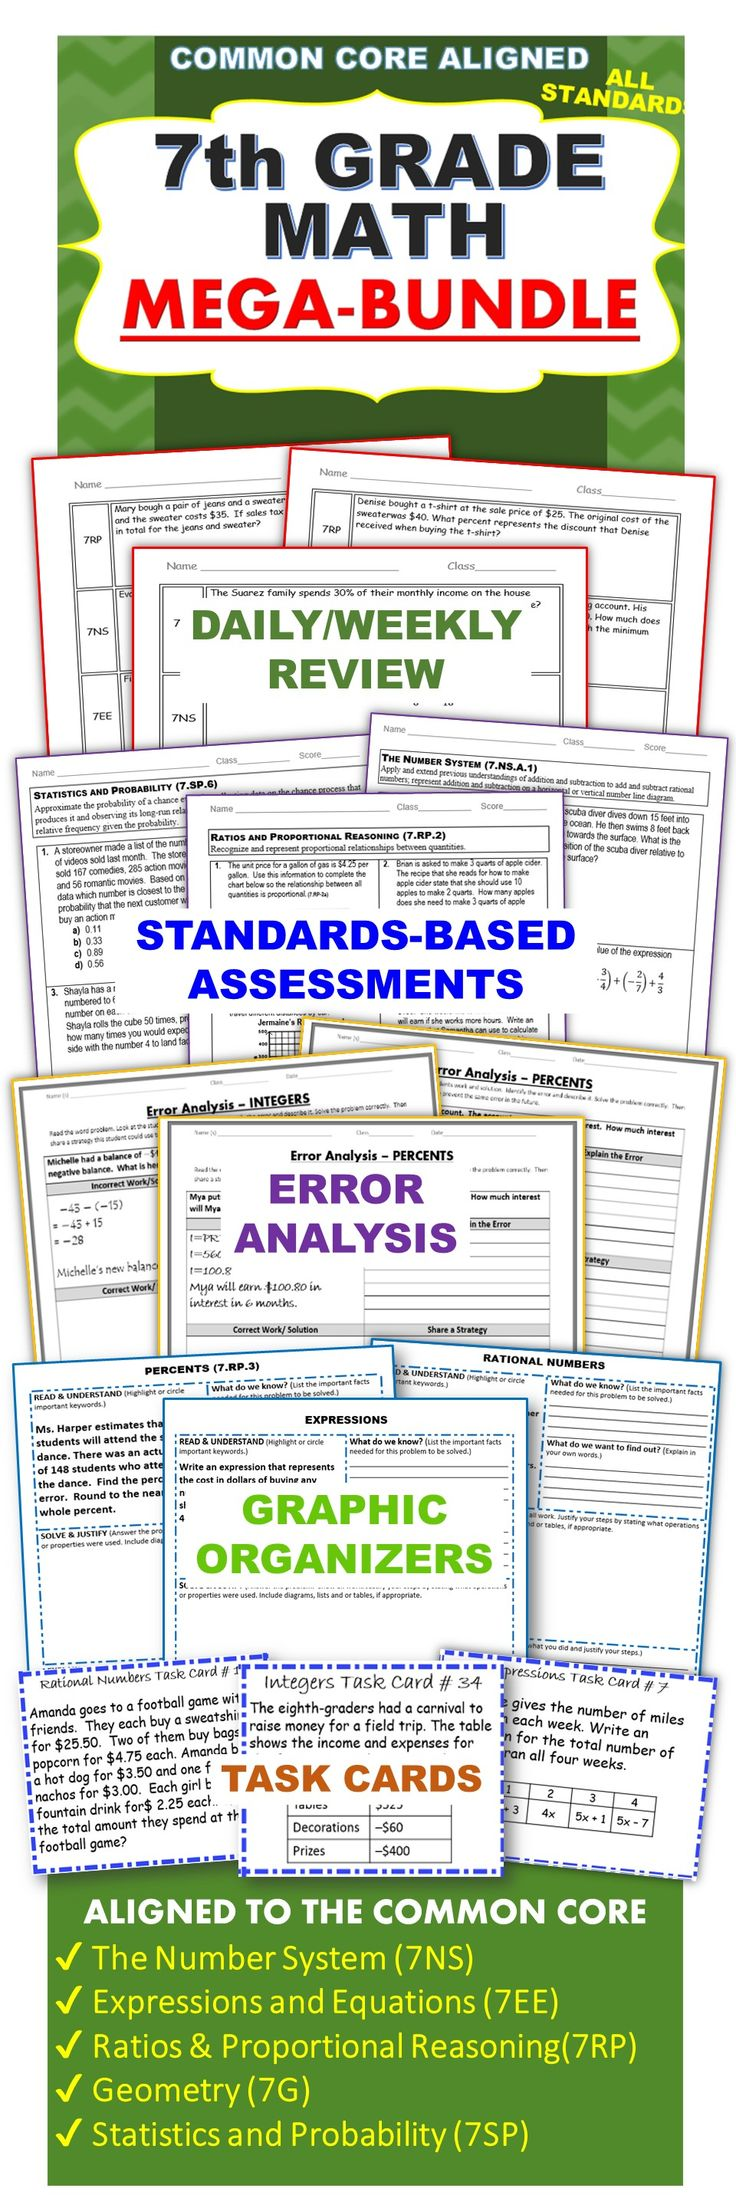 hight resolution of Exceeding the CORE: 7th Grade Math COMMON CORE Assessments